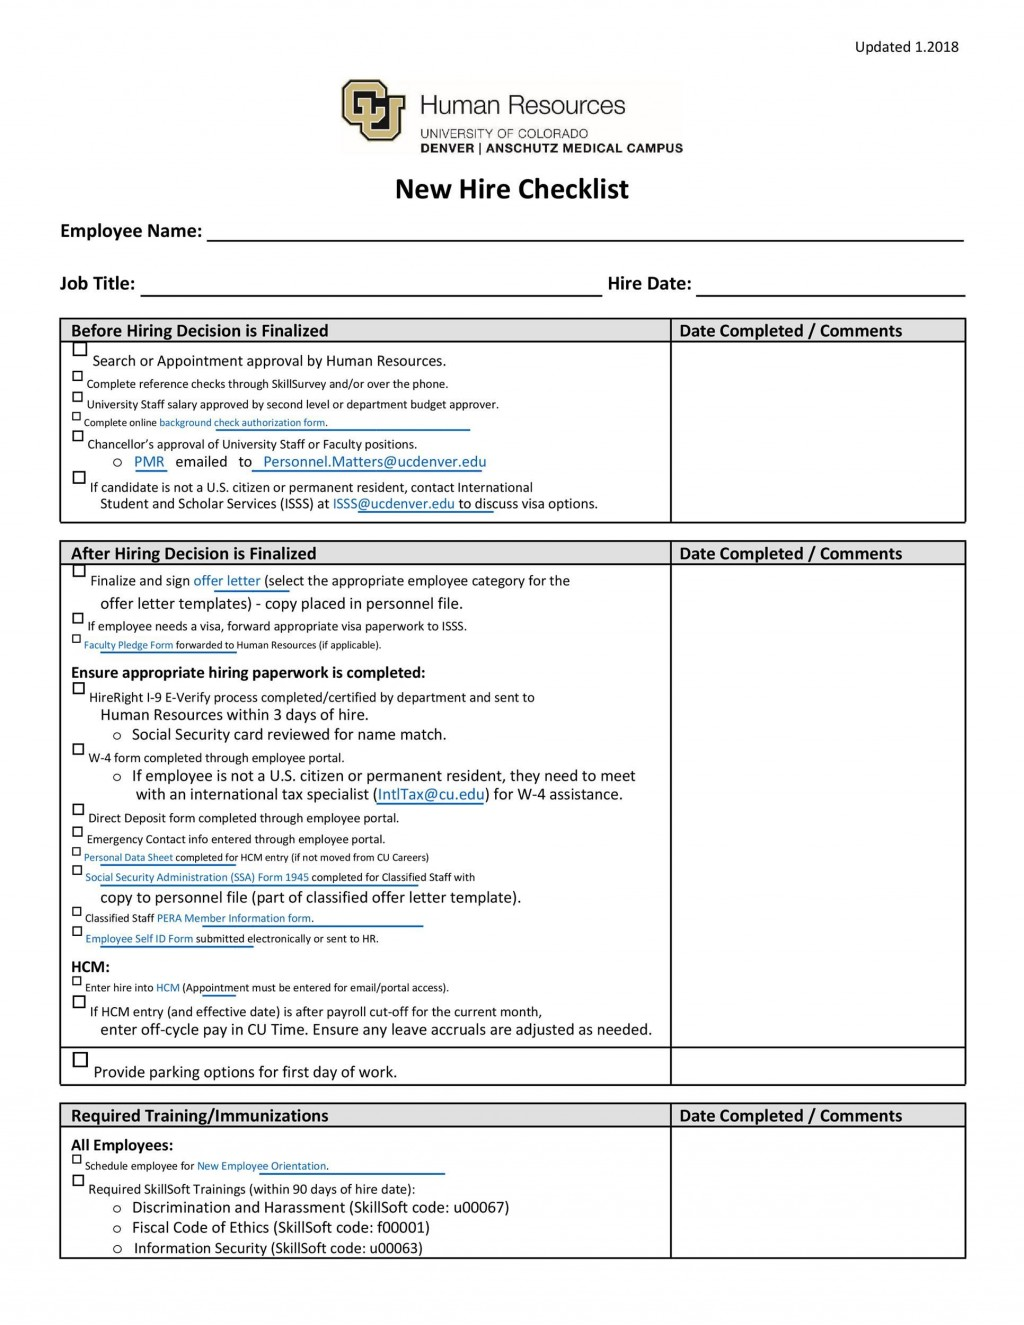 007 Amazing New Hire Checklist Template Sample  Employee Onboarding Excel Free PdfLarge